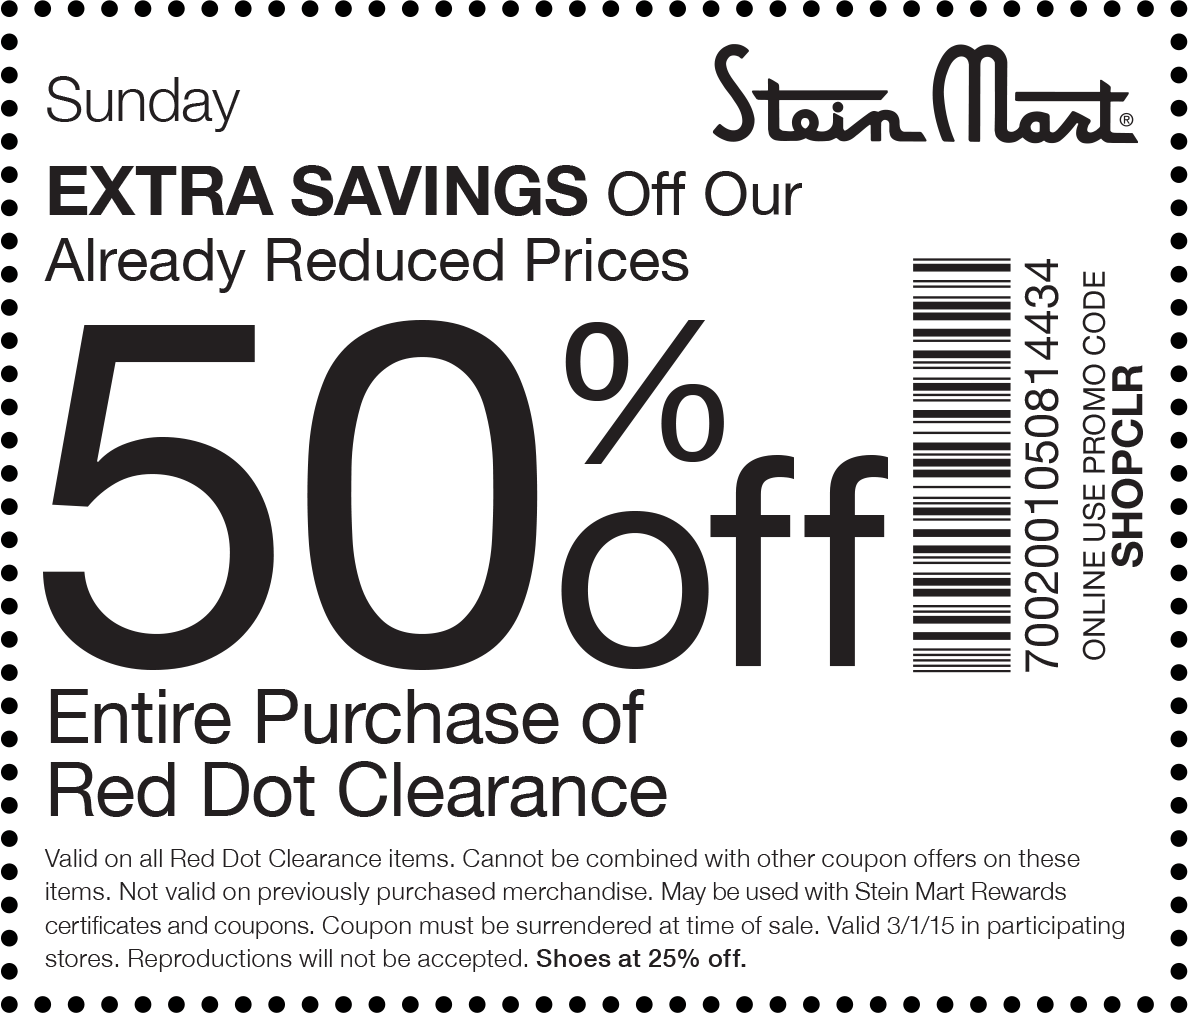 photo regarding Stein Mart in Store Printable Coupons called Pinned March 1st: Additional 50% off crimson dot clearance presently at